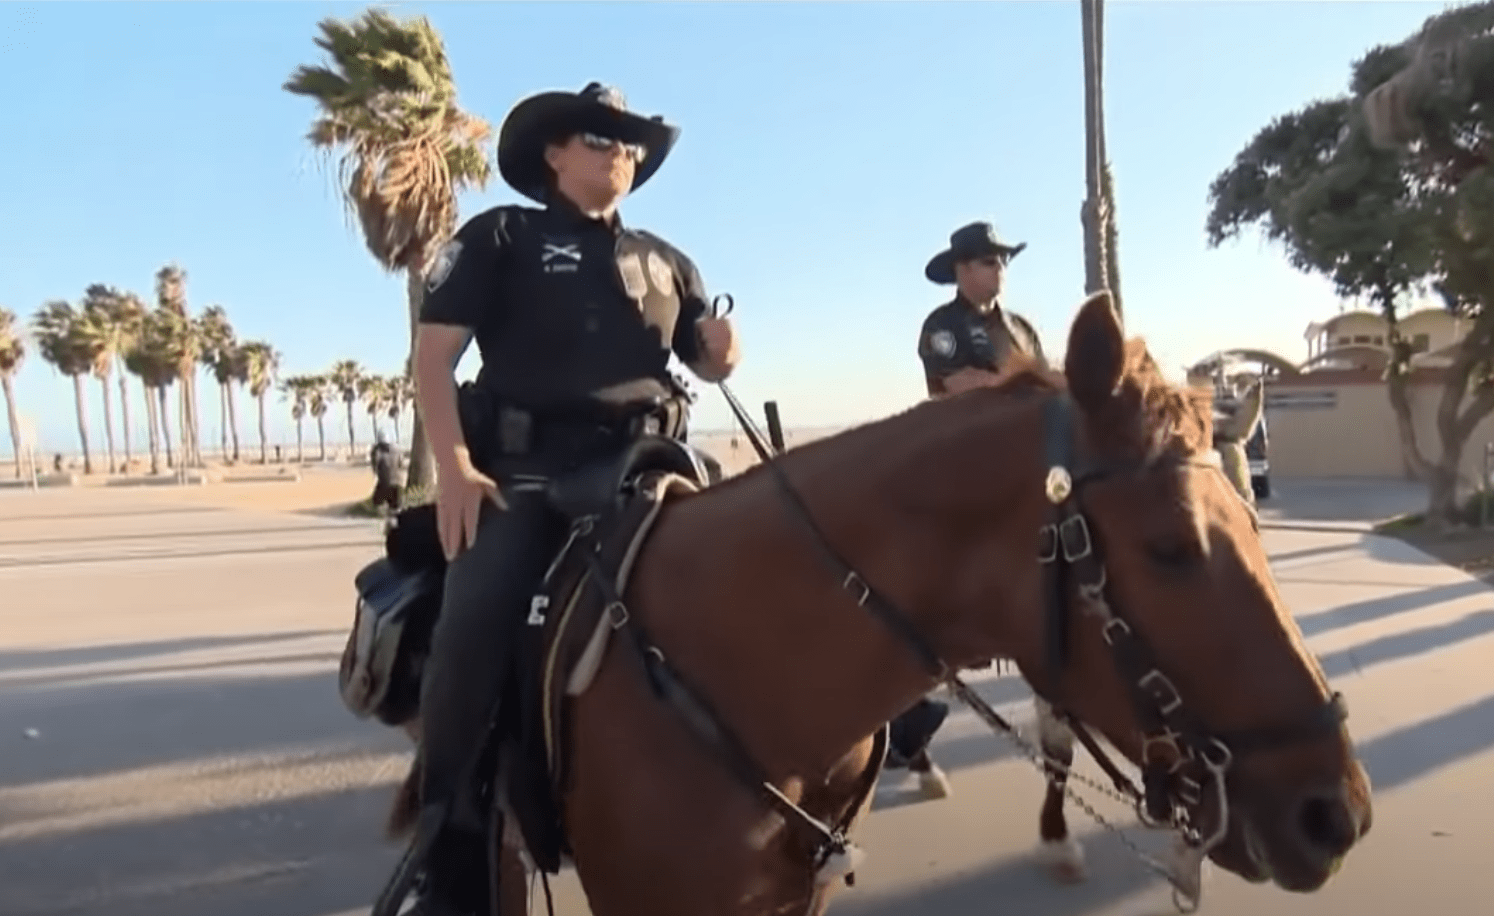 Report: Sheriff says he won't enforce Los Angeles County order to close beaches on Fourth of July